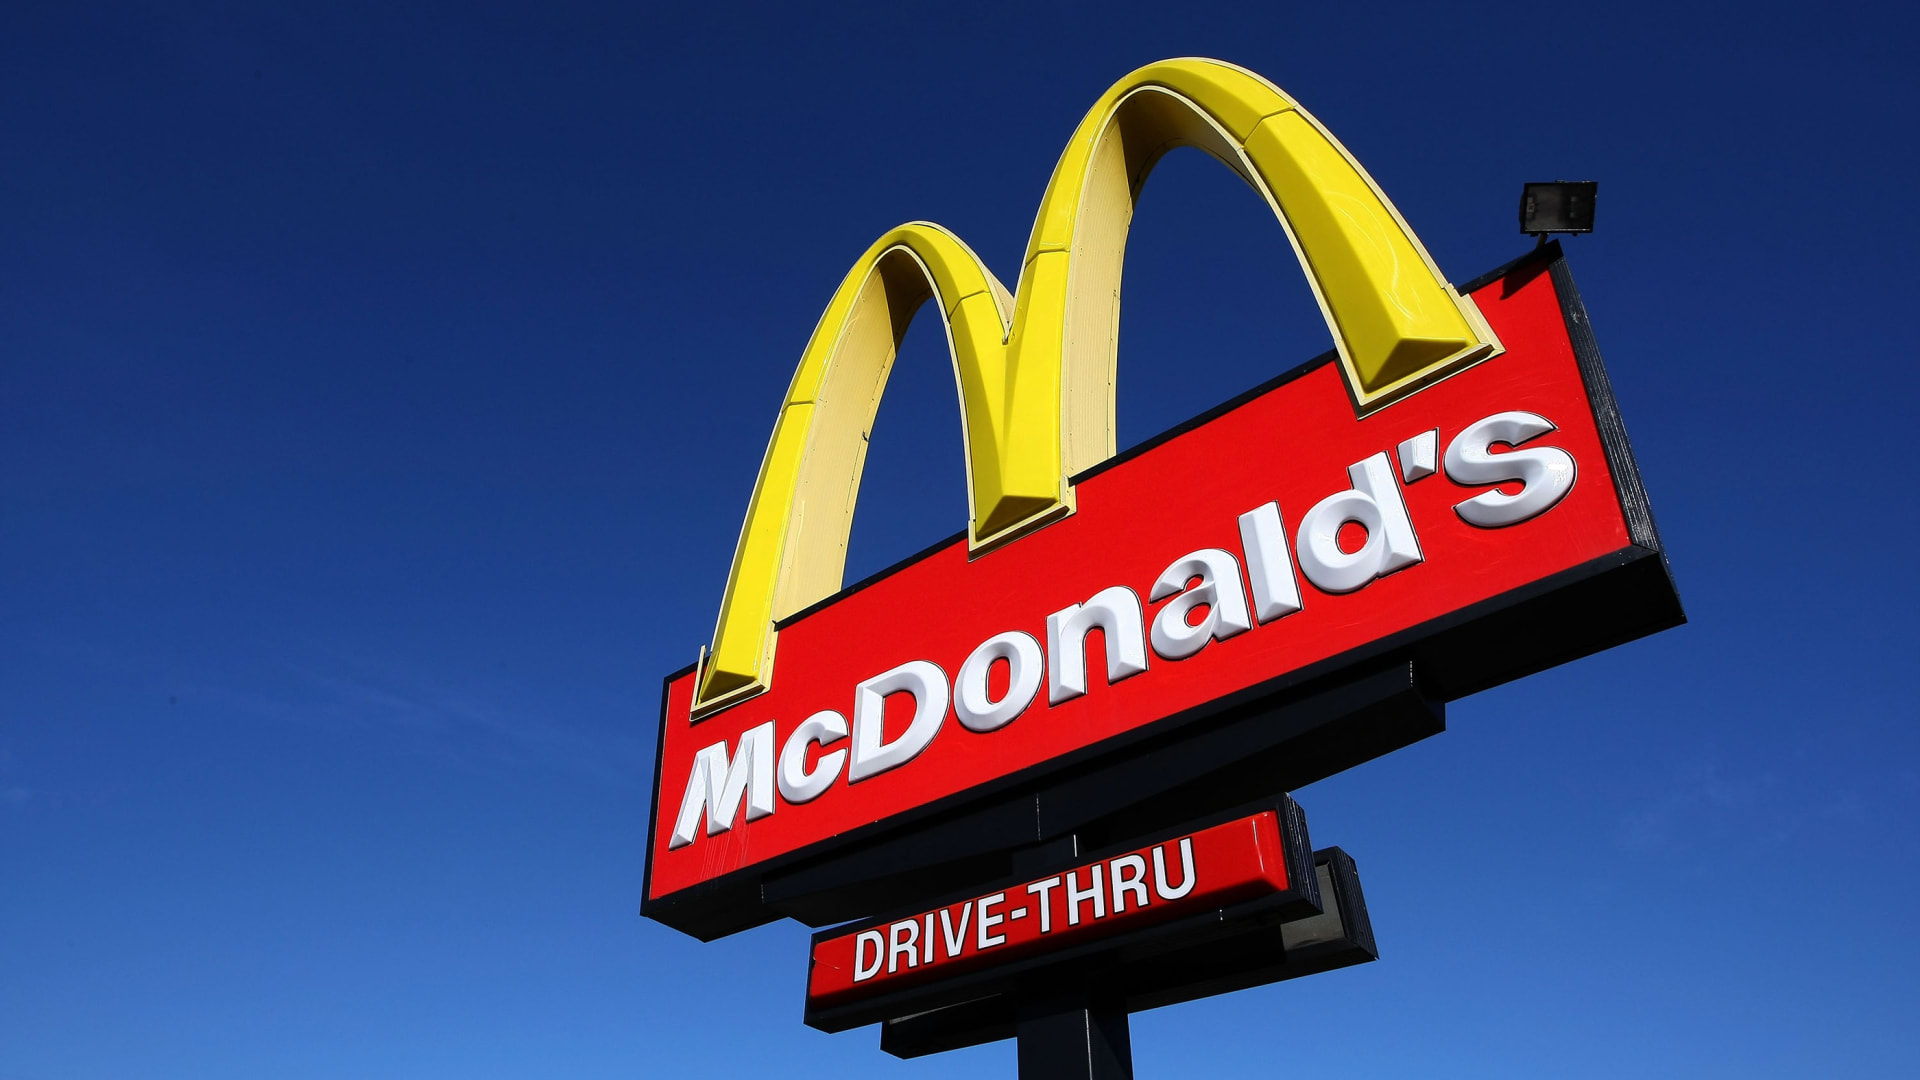 McDonald's Just Announced Some Great News, and It Has These 3 Things to Thank